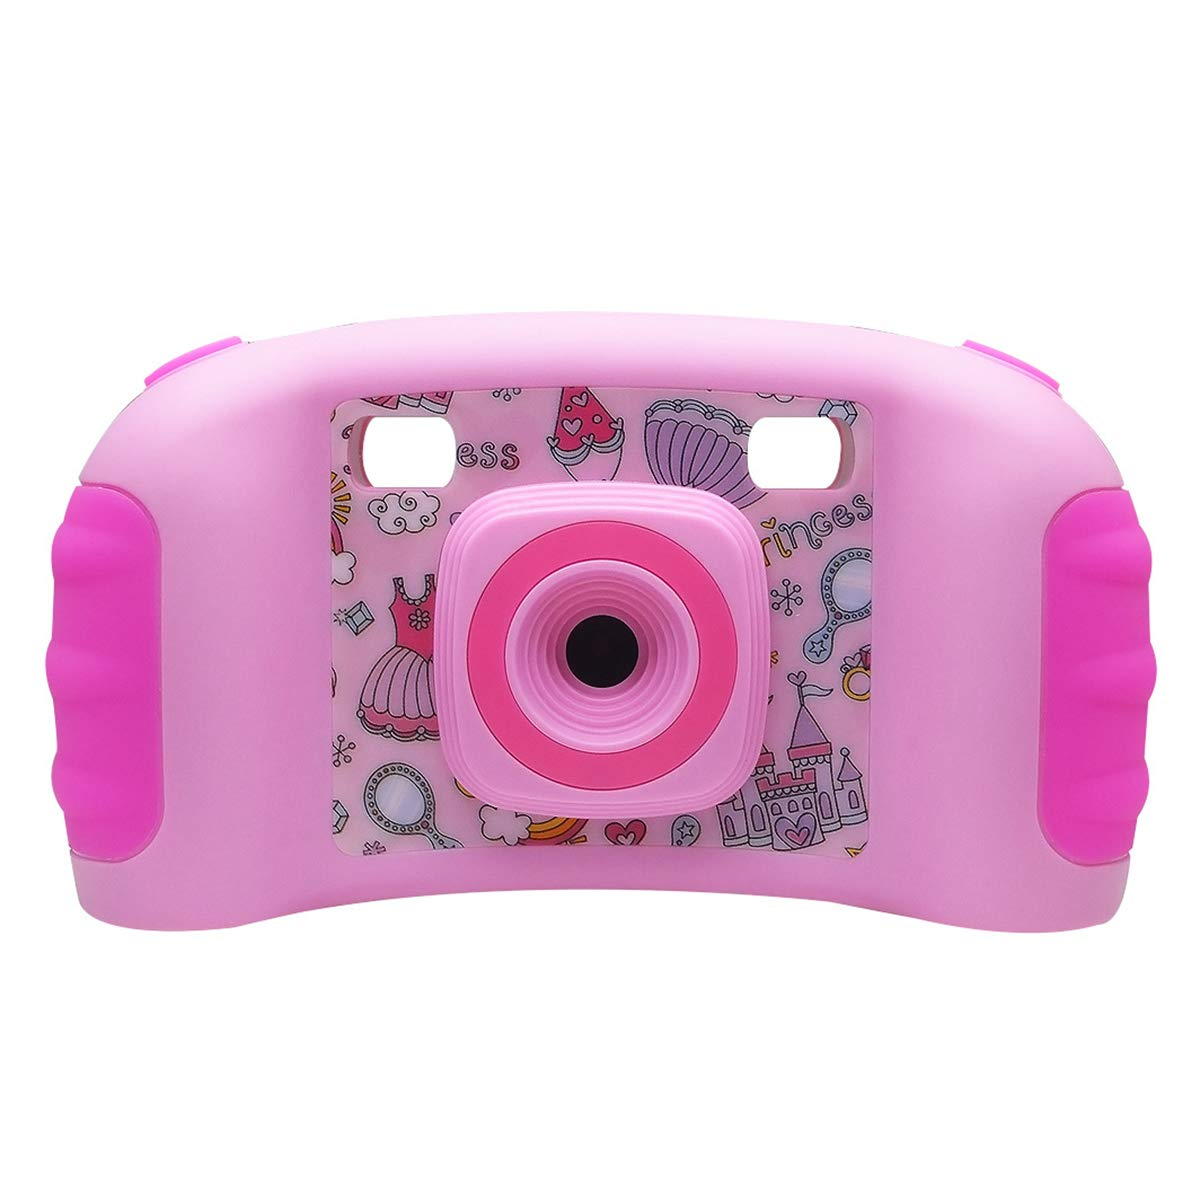 bouti1583 Digital Photo Video Cameras with Games 1.77 LED Screen for Kids Toy